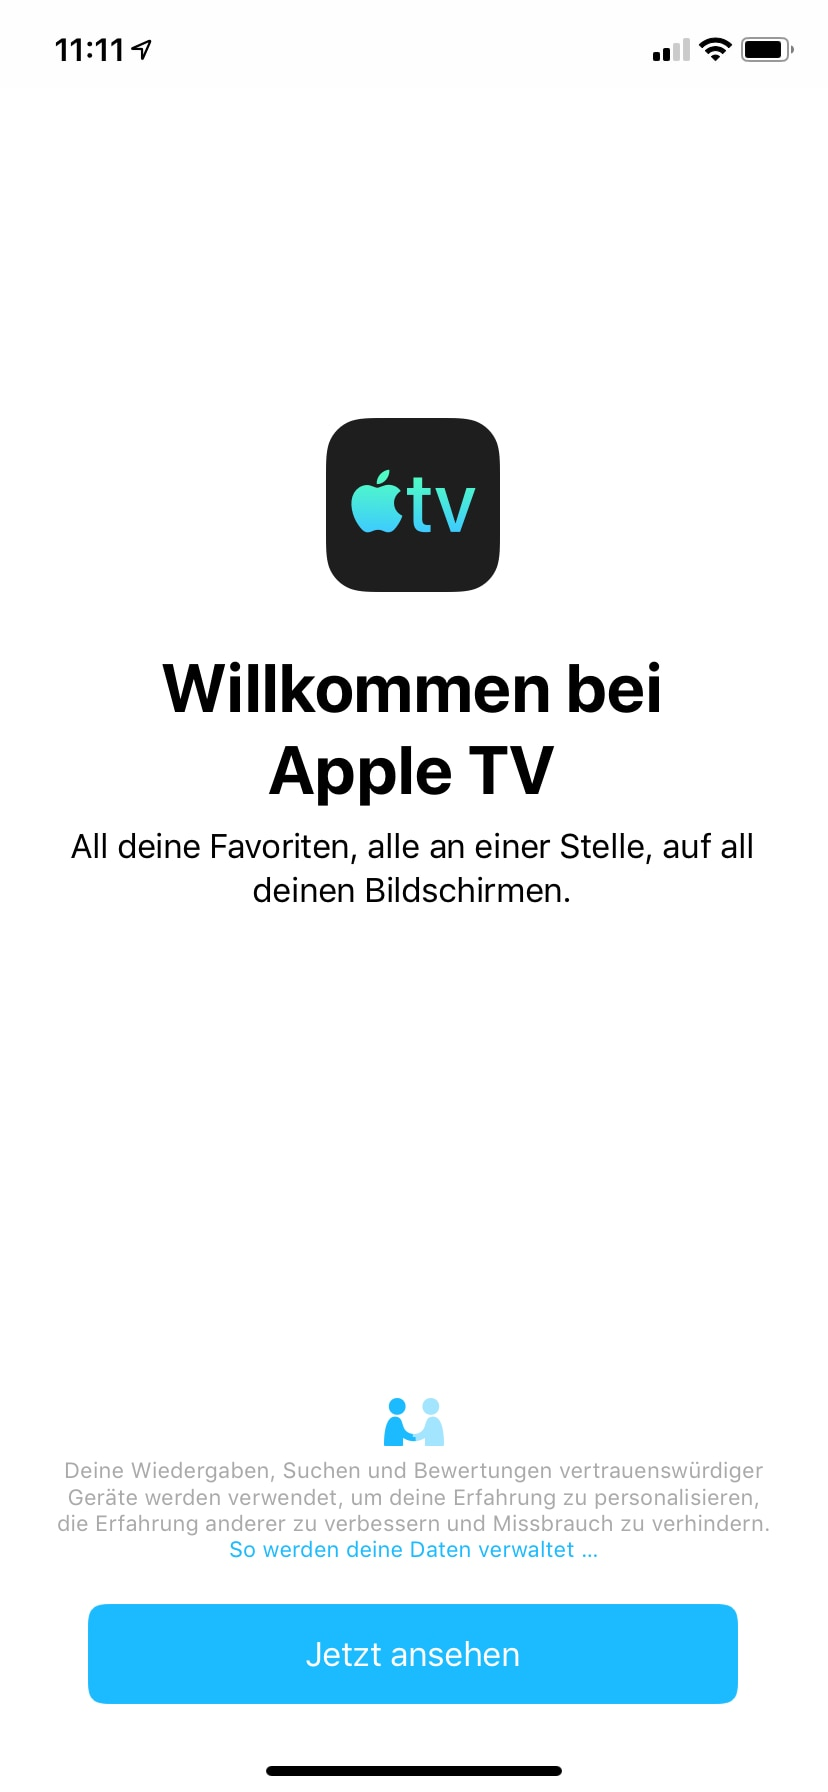 Apple TV app on the iPhone